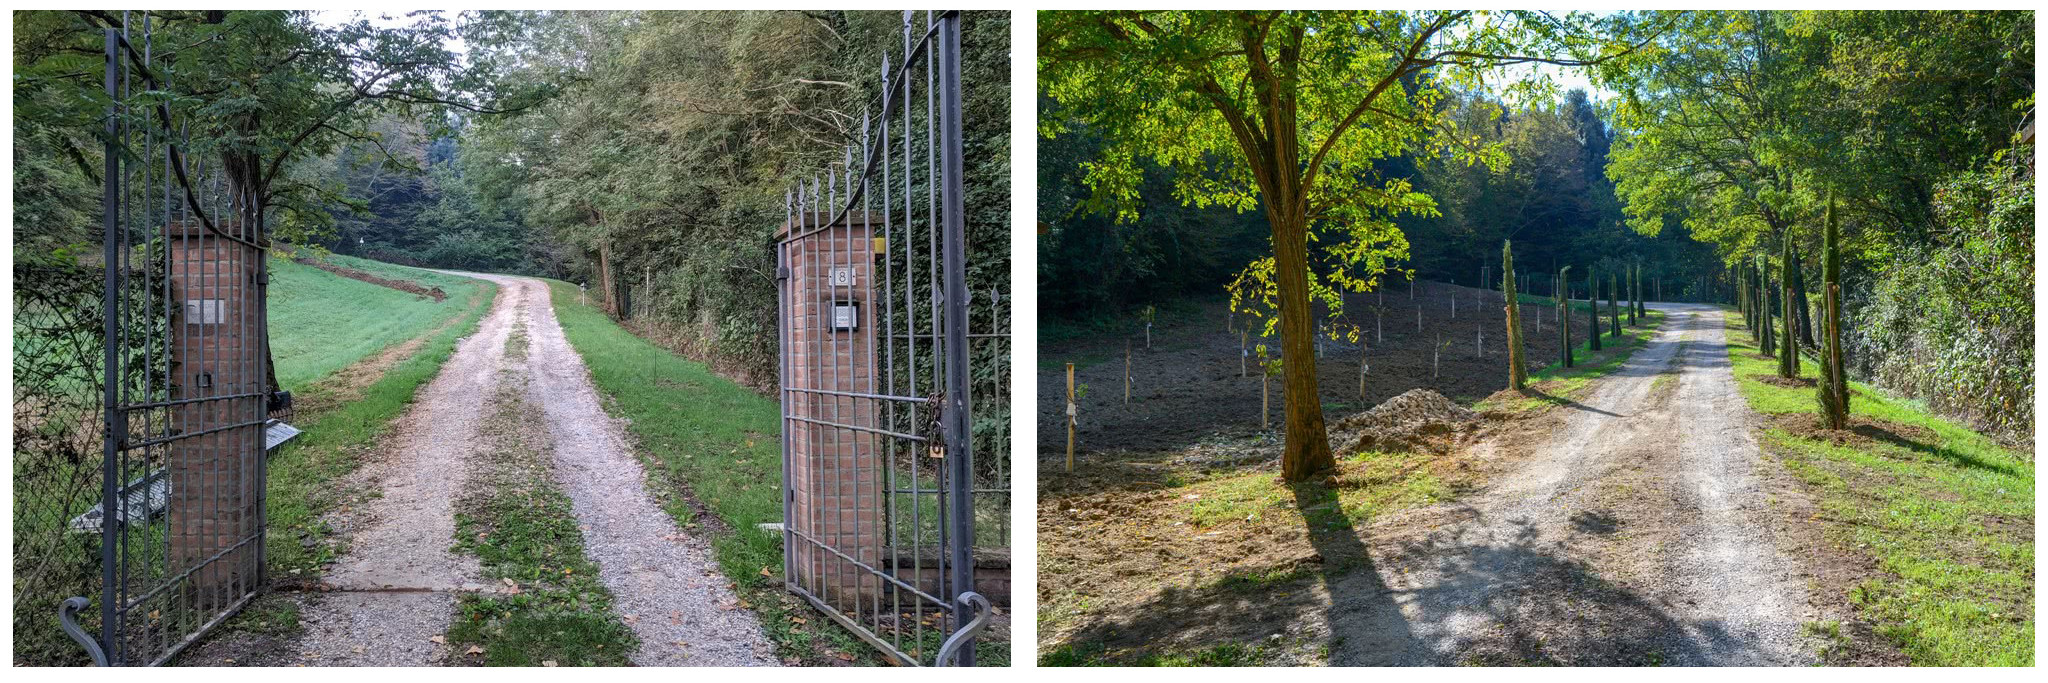 Fonte Martino Entrance Drive Before and After